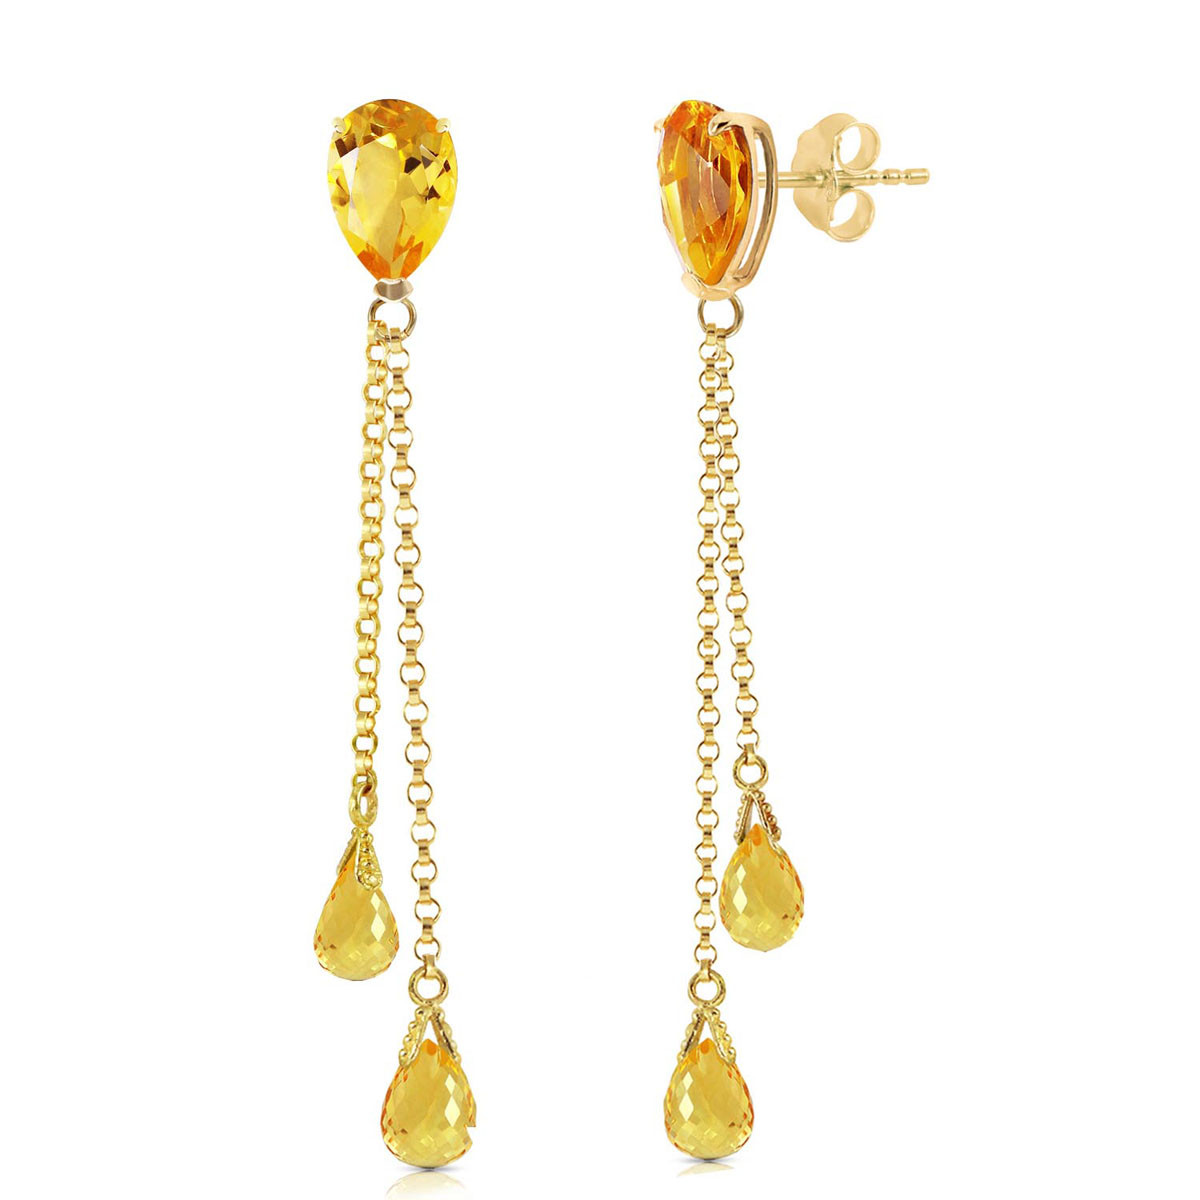 Citrine Droplet Earrings 7.5 ctw in 9ct Gold